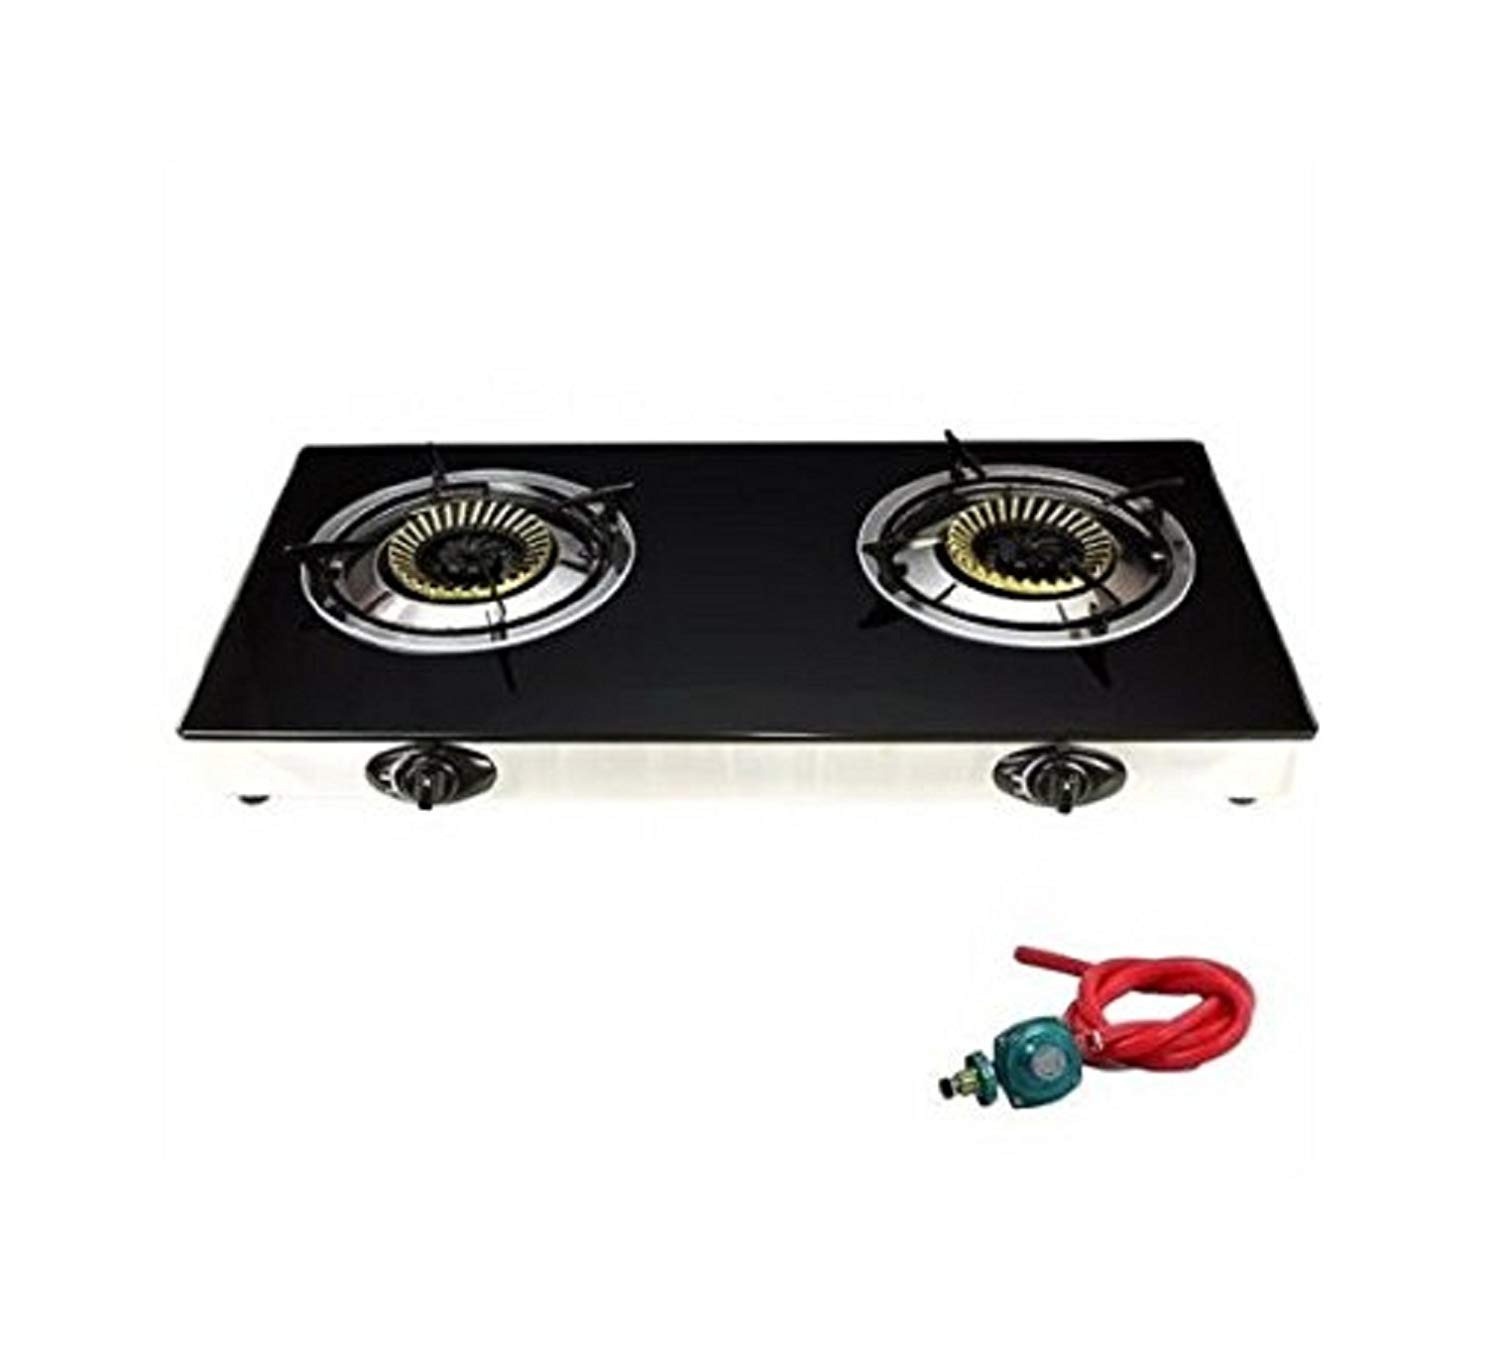 USA Premium Store Gas Range Stove Deluxe 2 Burner Tempered Glass Cooktop Auto Ignition